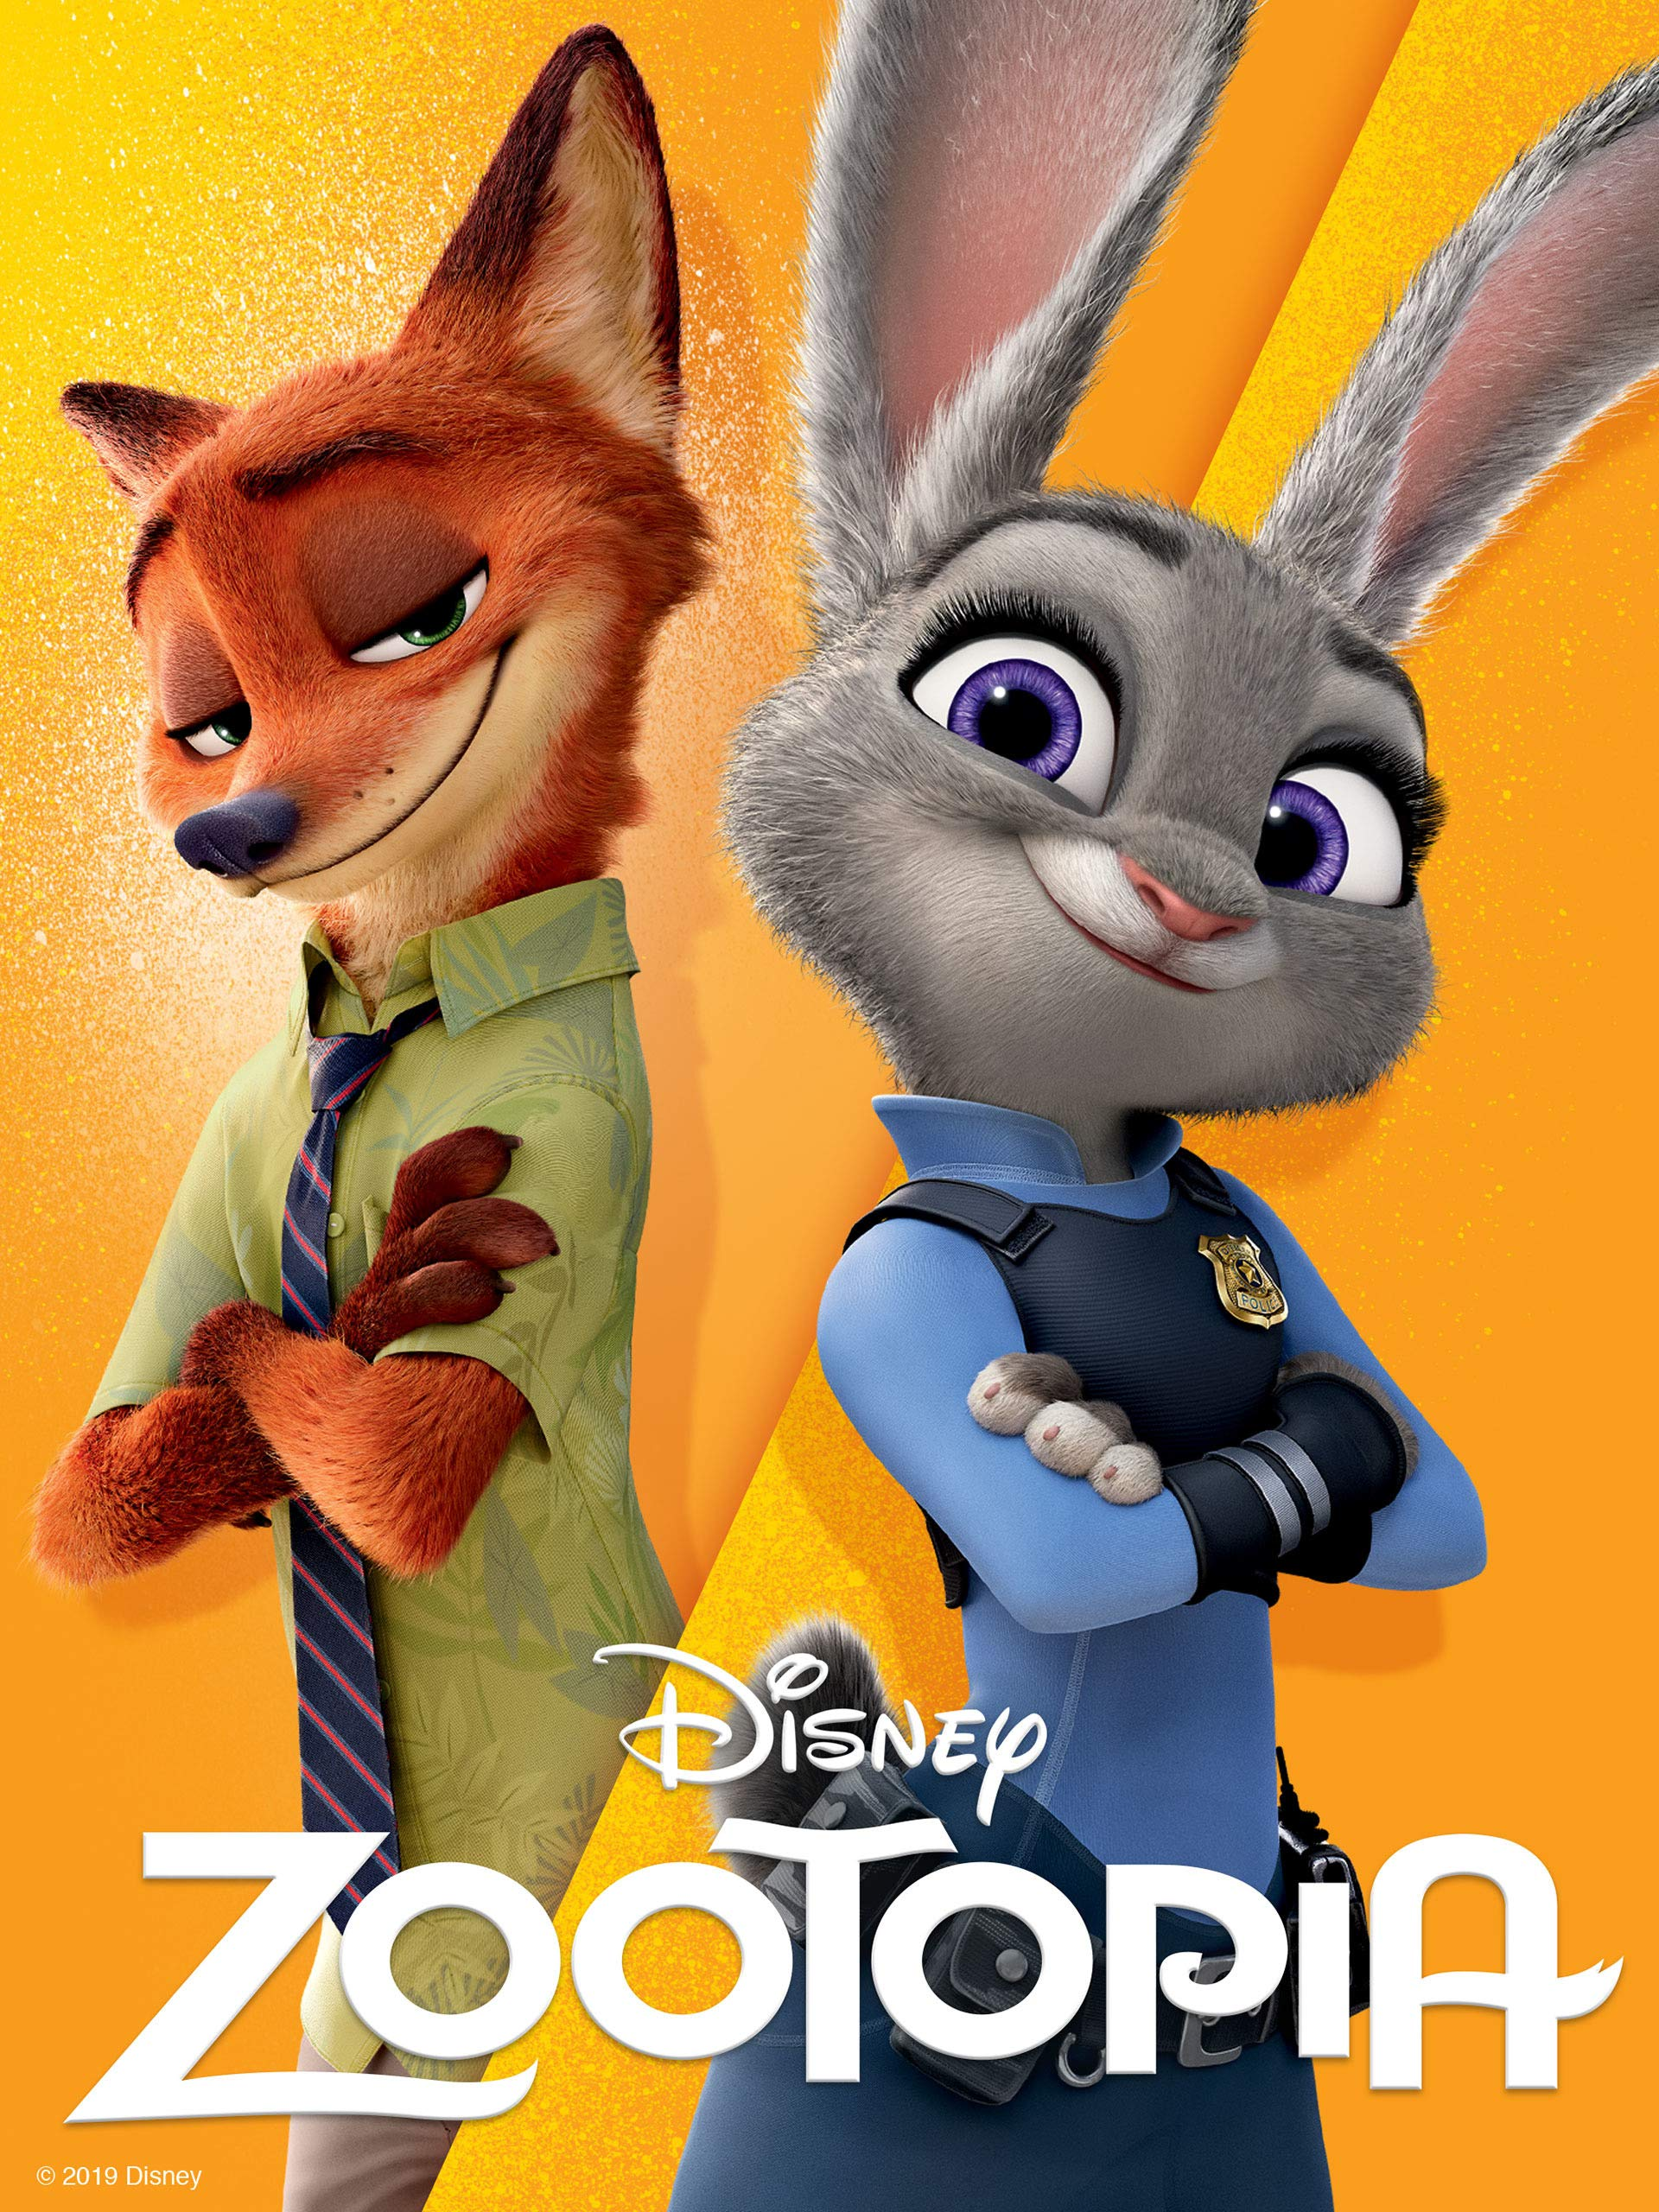 watch zootopia online free no sign up